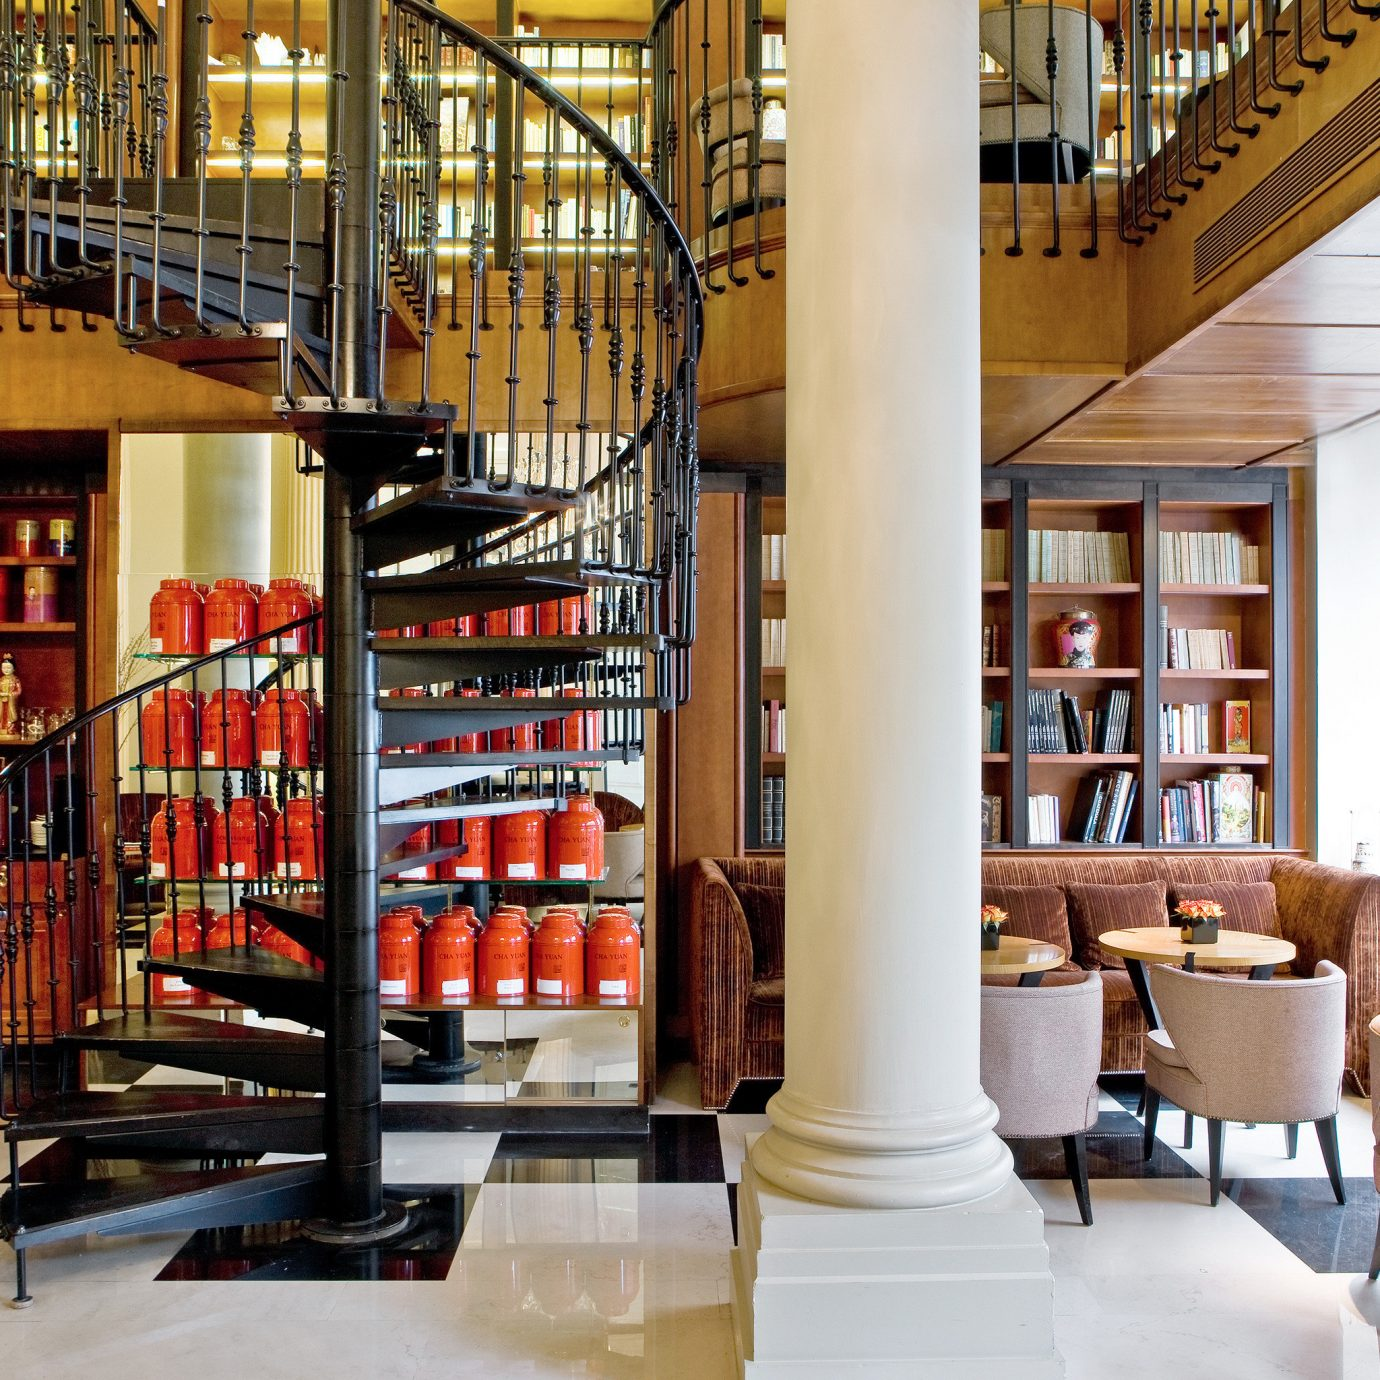 Entertainment Lounge Luxury Resort library building public library retail bookselling